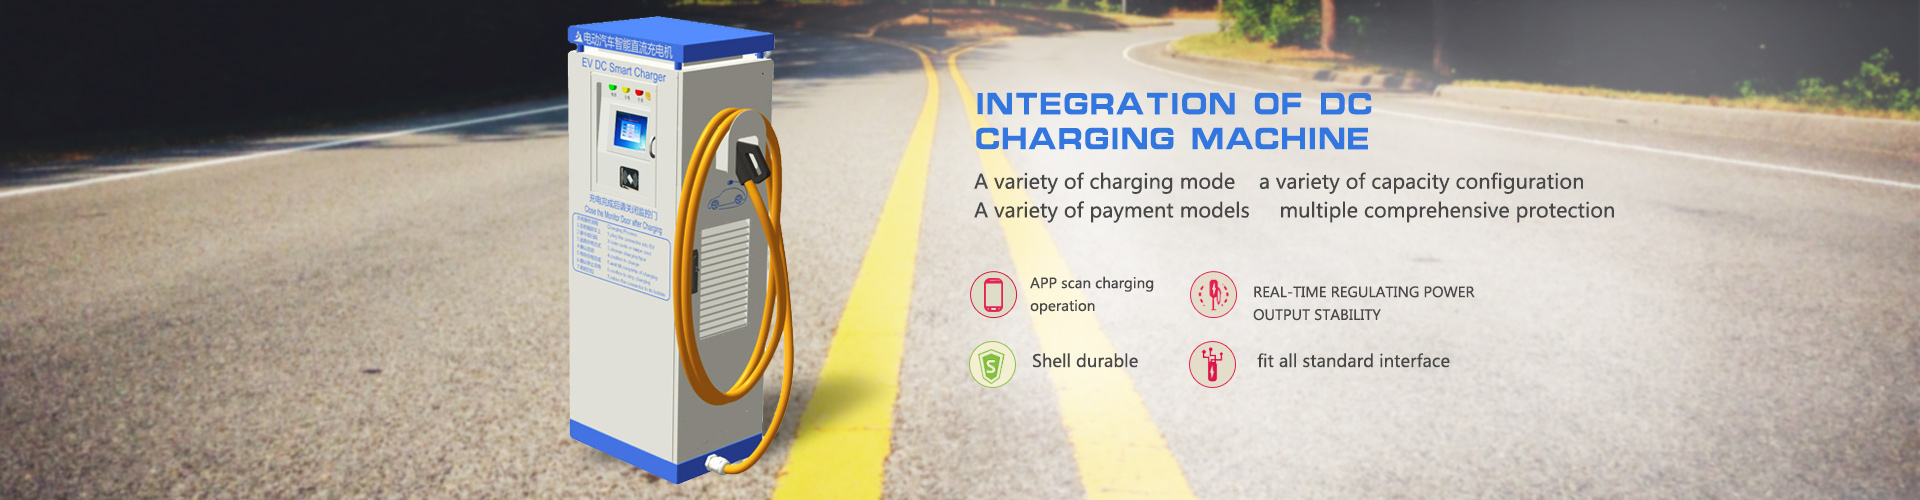 Integration of DC charging machine